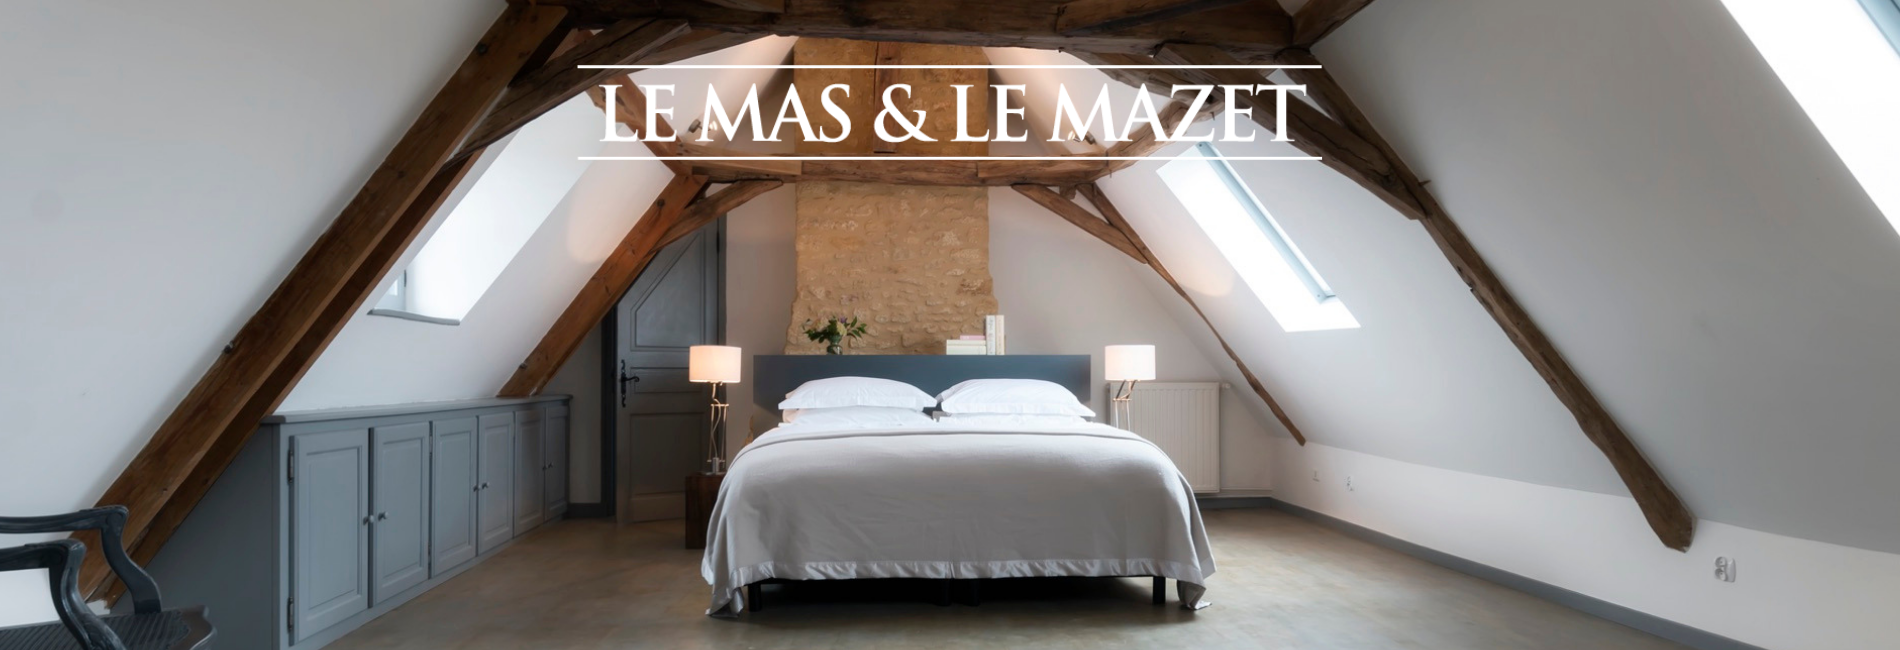 Le Mas & Le Mazet - luxurious holiday homes in the Dordogne